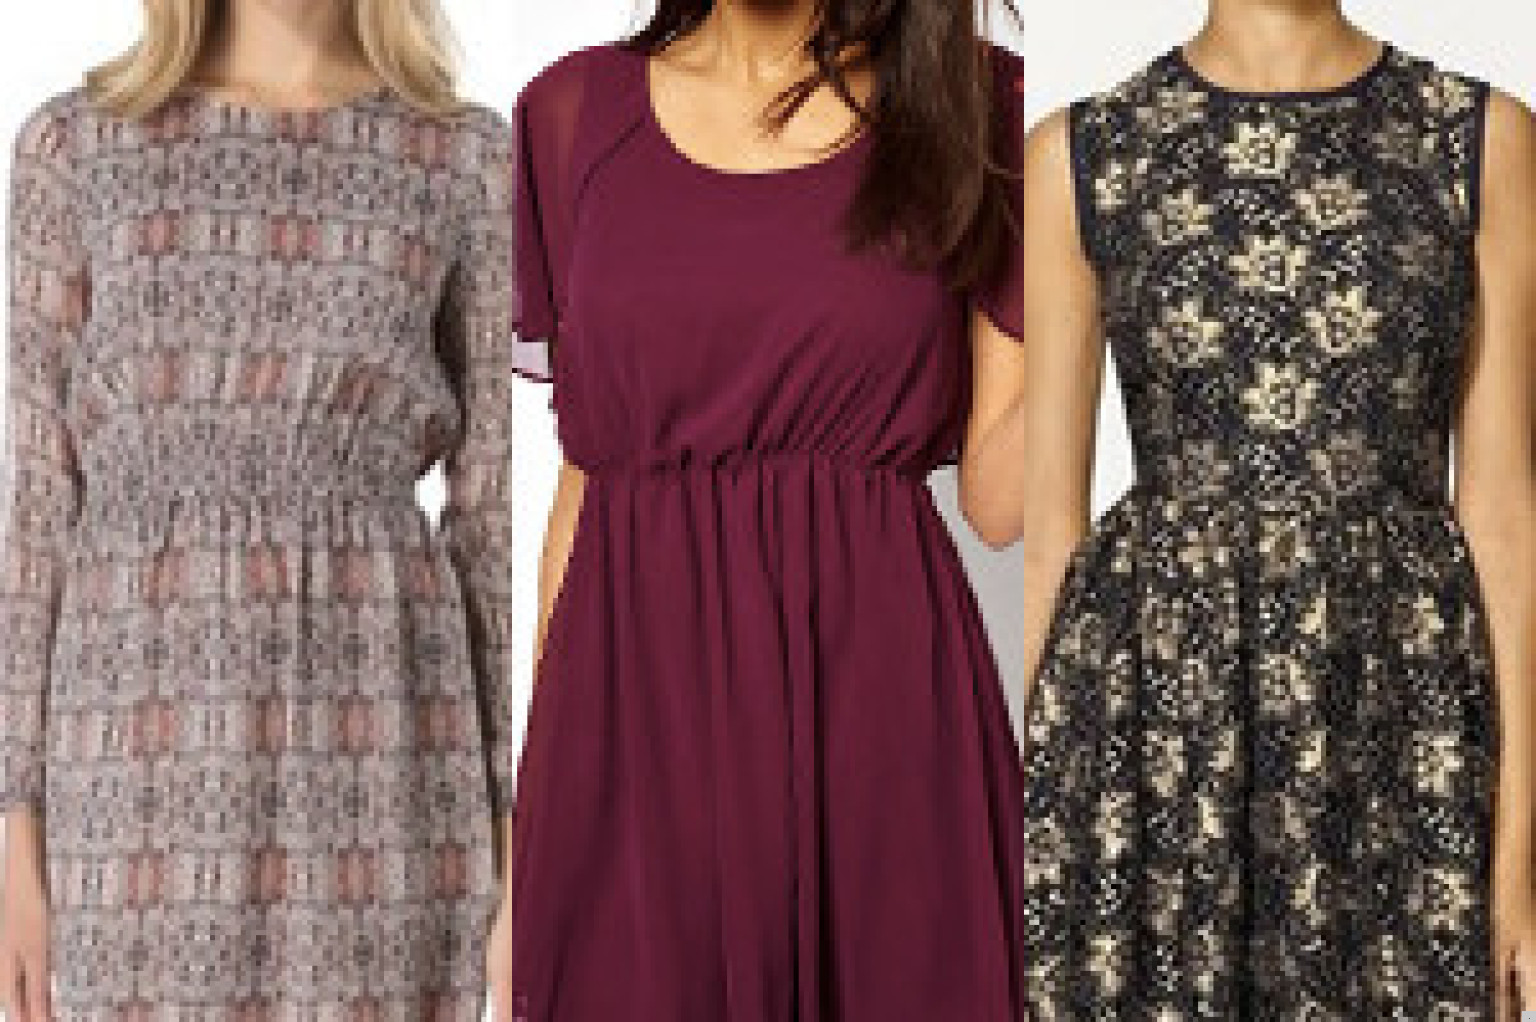 Christmas dress teen - 5 Christmas Outfits To Take You From Opening Presents To Church To A Large Family Dinner Photos Huffpost